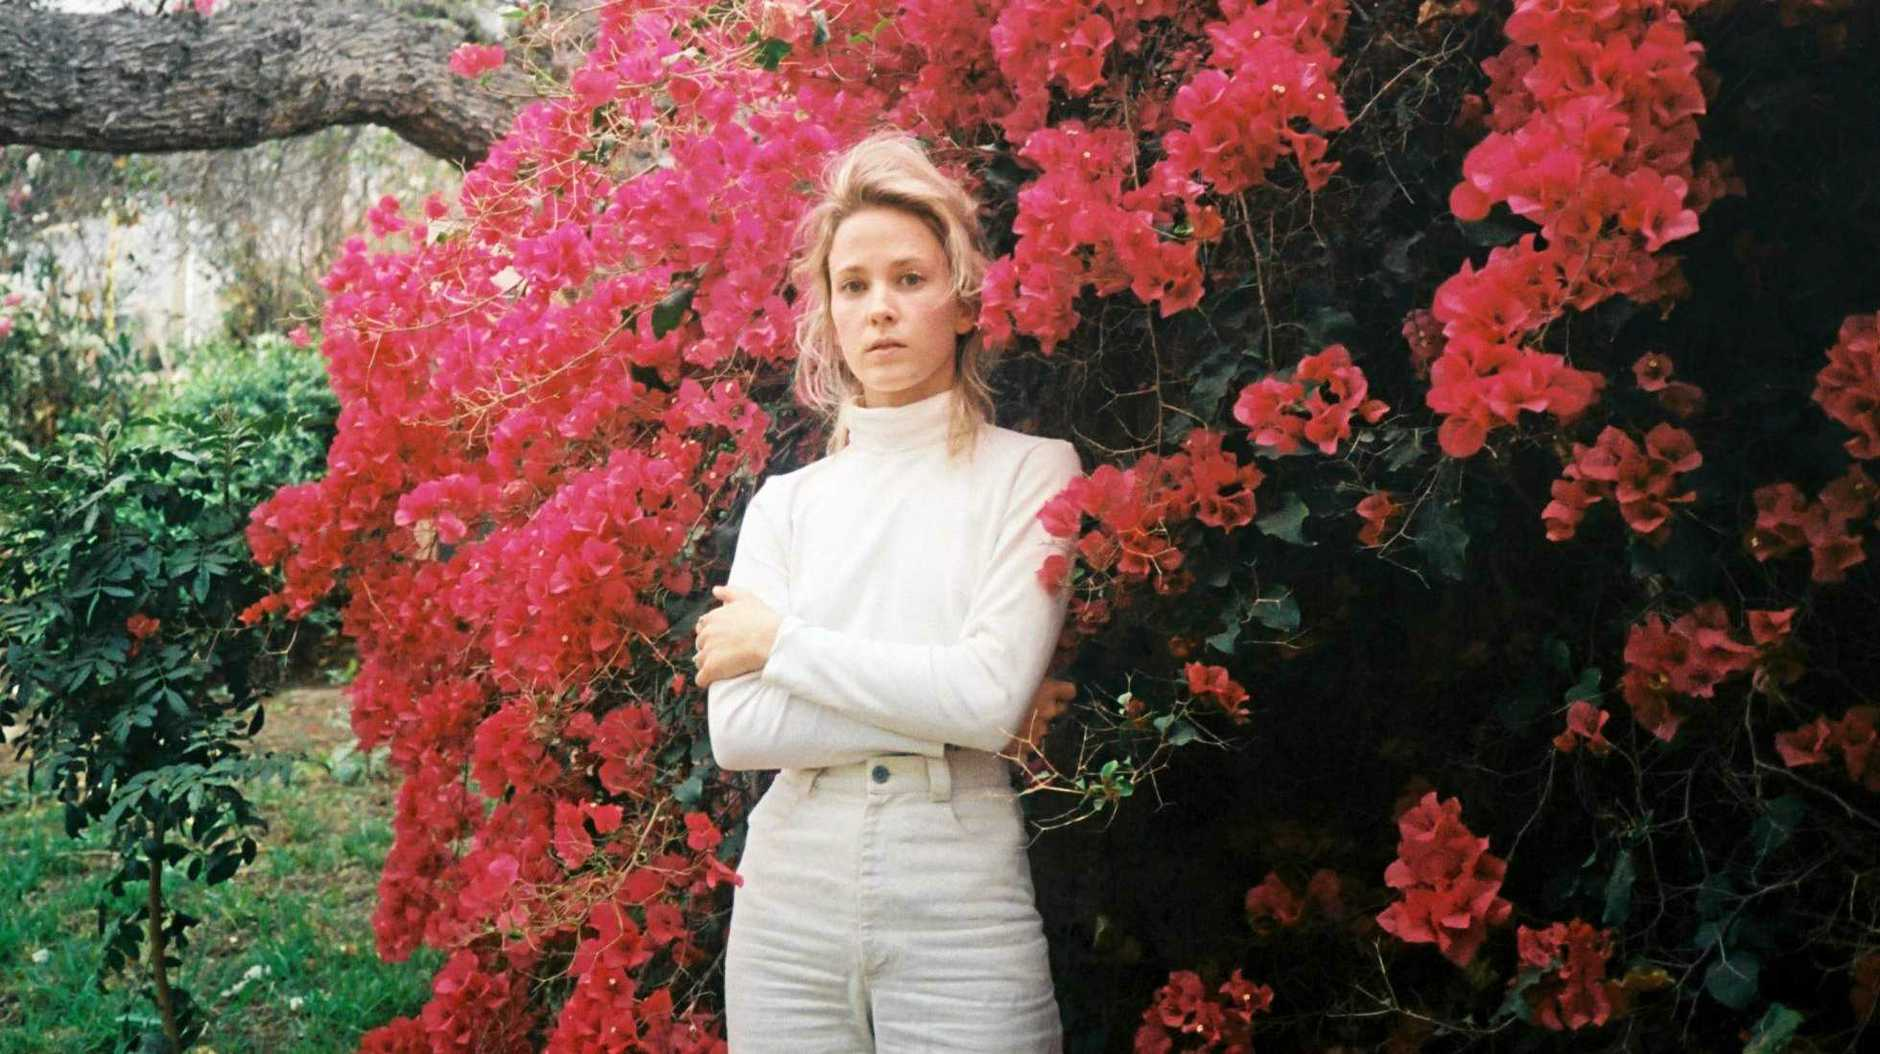 TOURING: Emma Louise Lobb, who performs as Emma Louise, is an Australian indie pop singer-songwriter originally from Cairns but now sharing her time between Byron Bay and Los Angeles. She will be performing at the Byron Bay Brewery on Saturday.